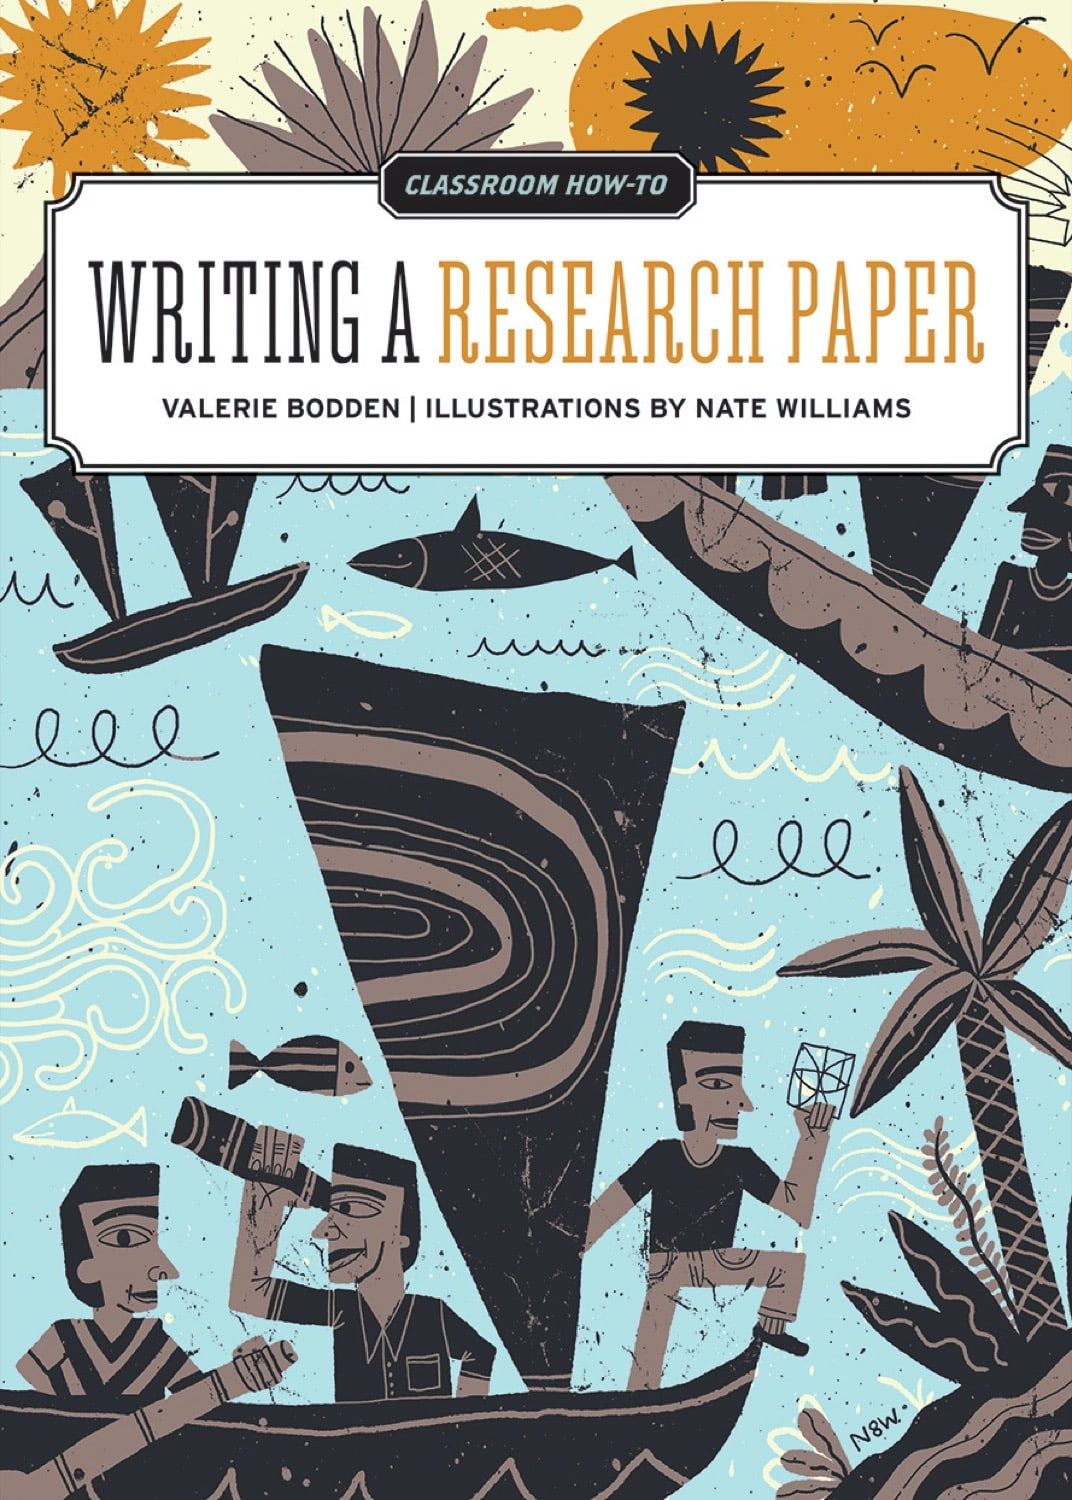 Classroom How-To: Writing a Research Paper